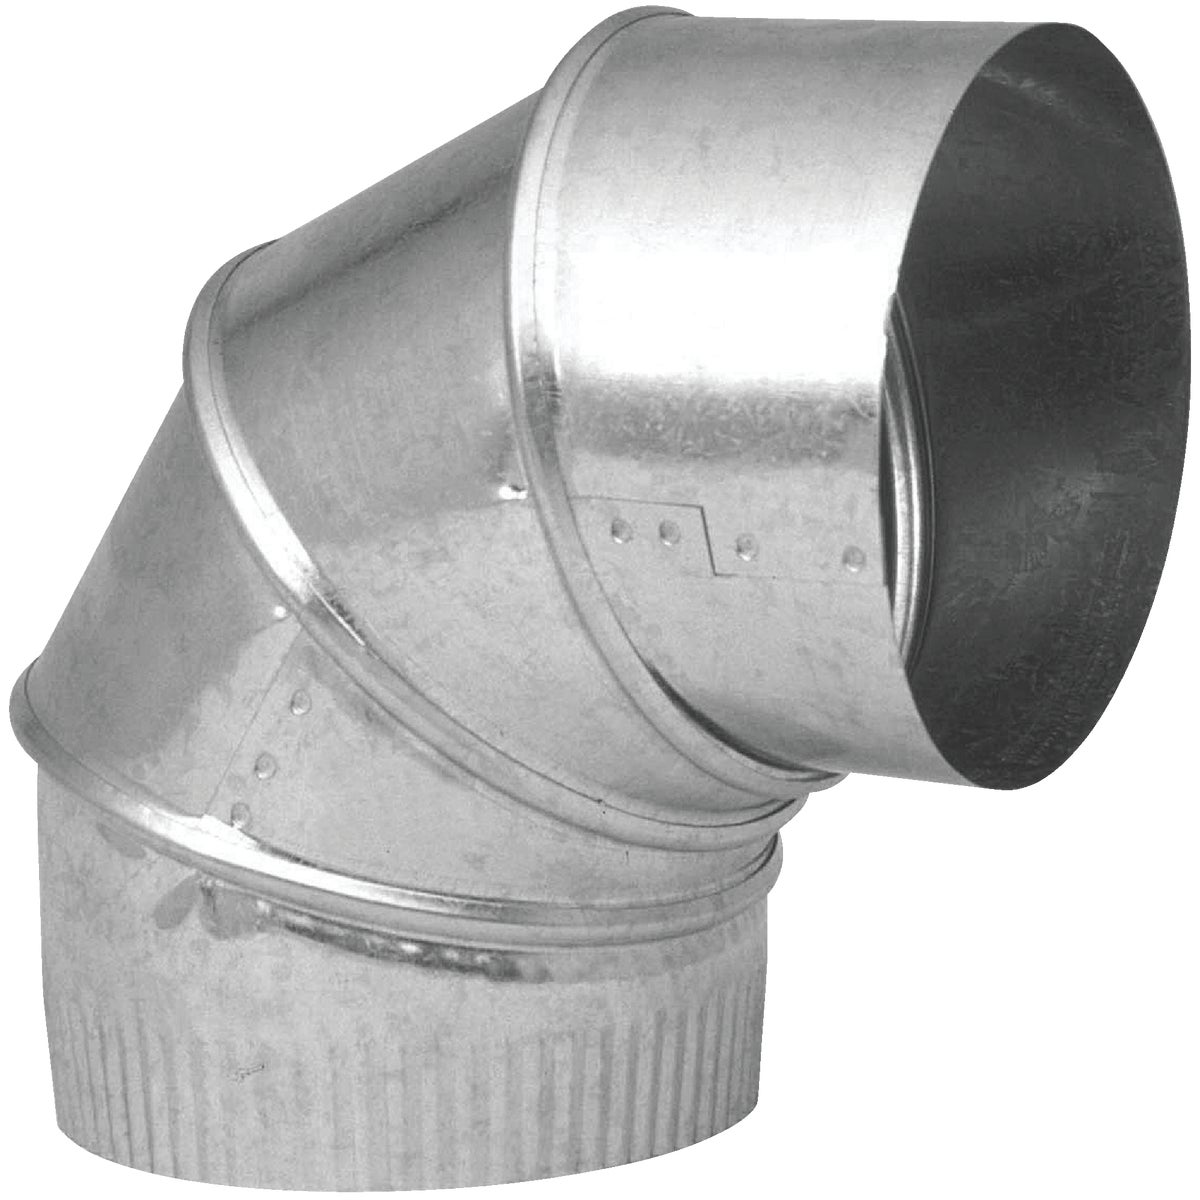 "10"" 24GA GALV ADJ ELBOW - GV0307 by Imperial Mfg Group"